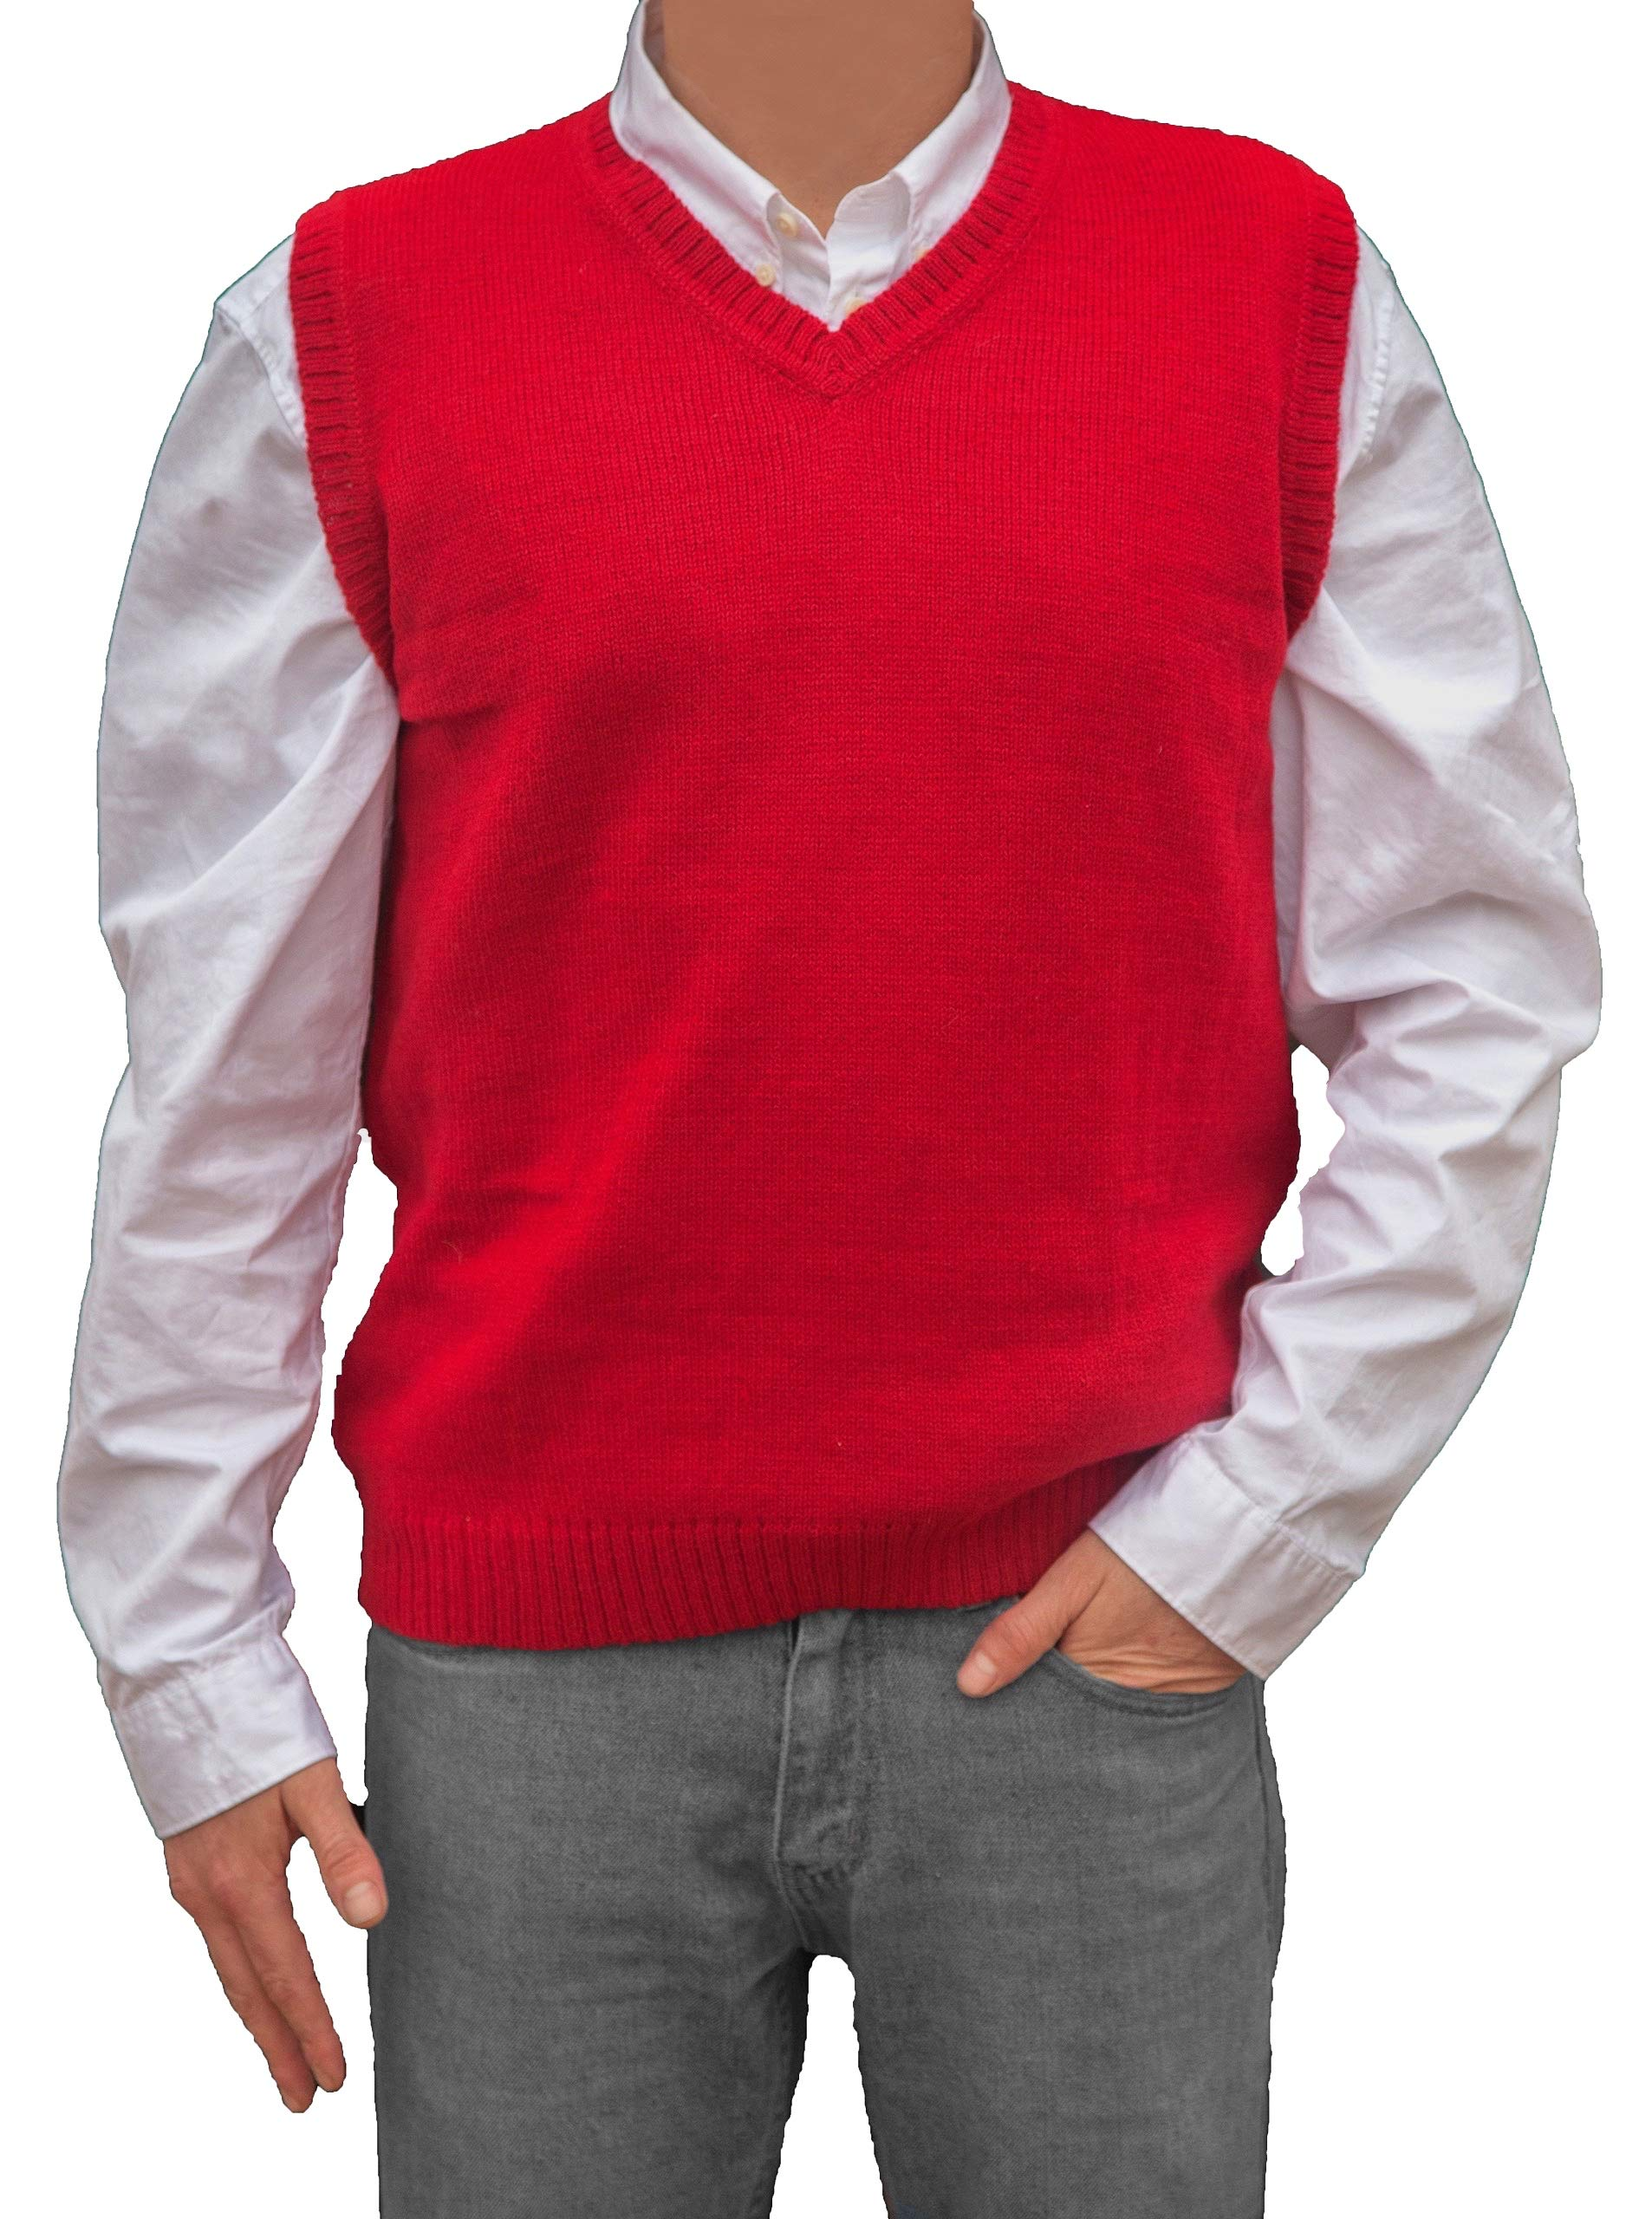 TINKUY PERU - Peruvian Alpaca Wool Mens Relax Fit Knit V-Neck Pullover Sweater Gilet Vest (XXX - Large, Red) by TINKUY PERU